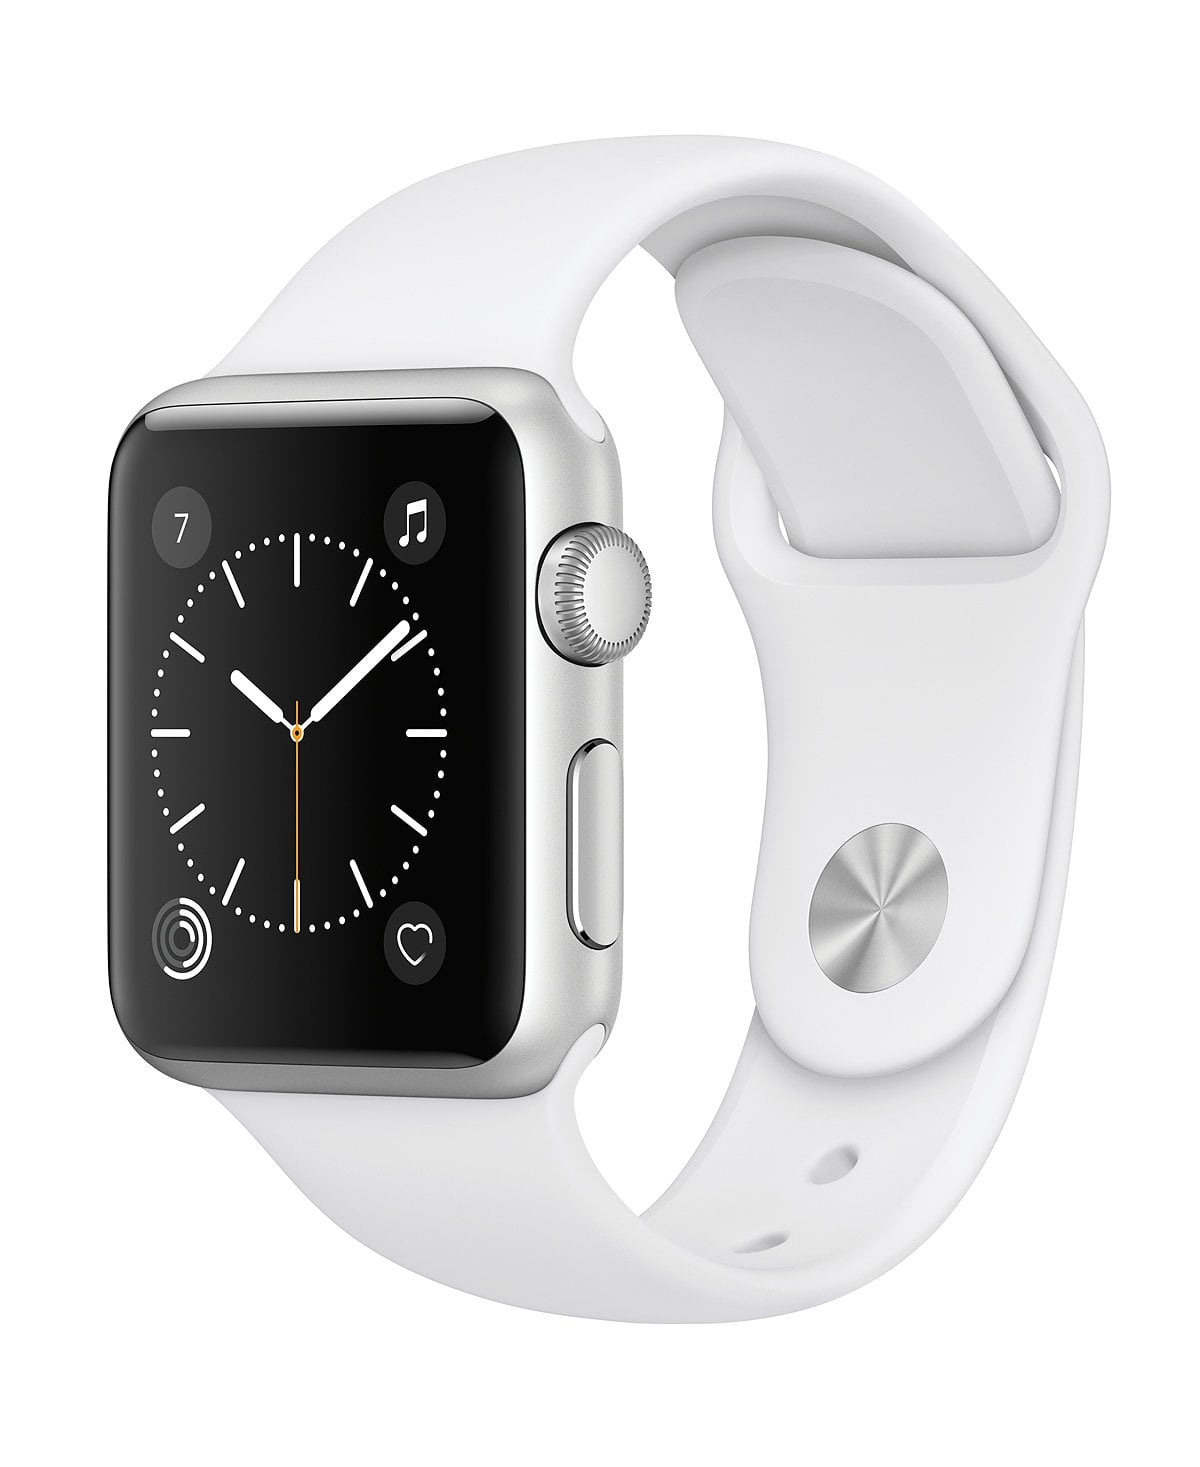 Macy's Apple Watch Series 1 179.99 (70 off) Black Friday Deal Live now